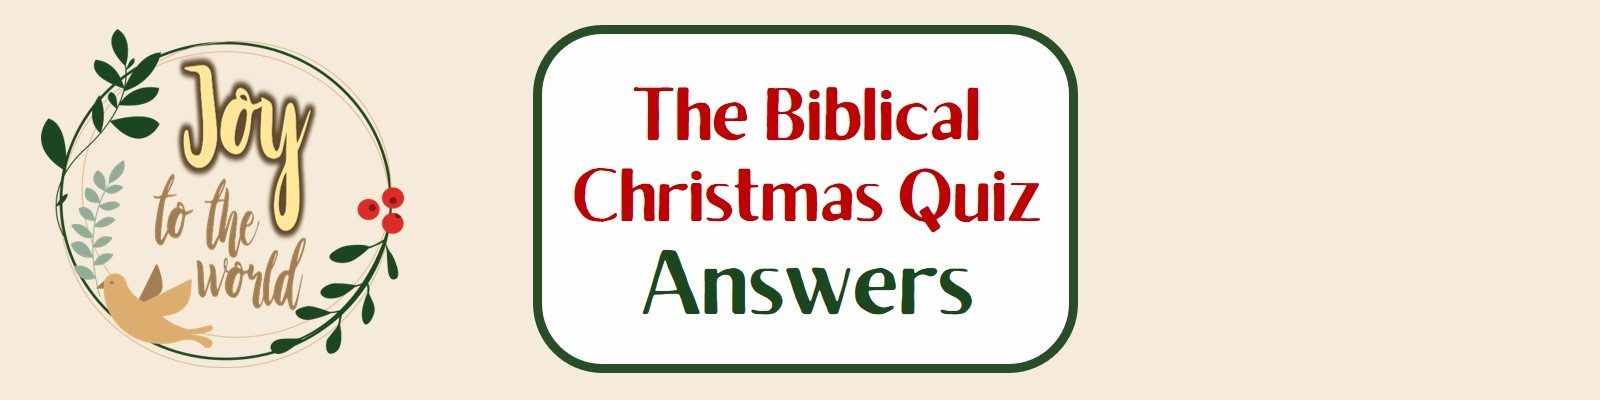 The Christmas Biblical Quiz Answers